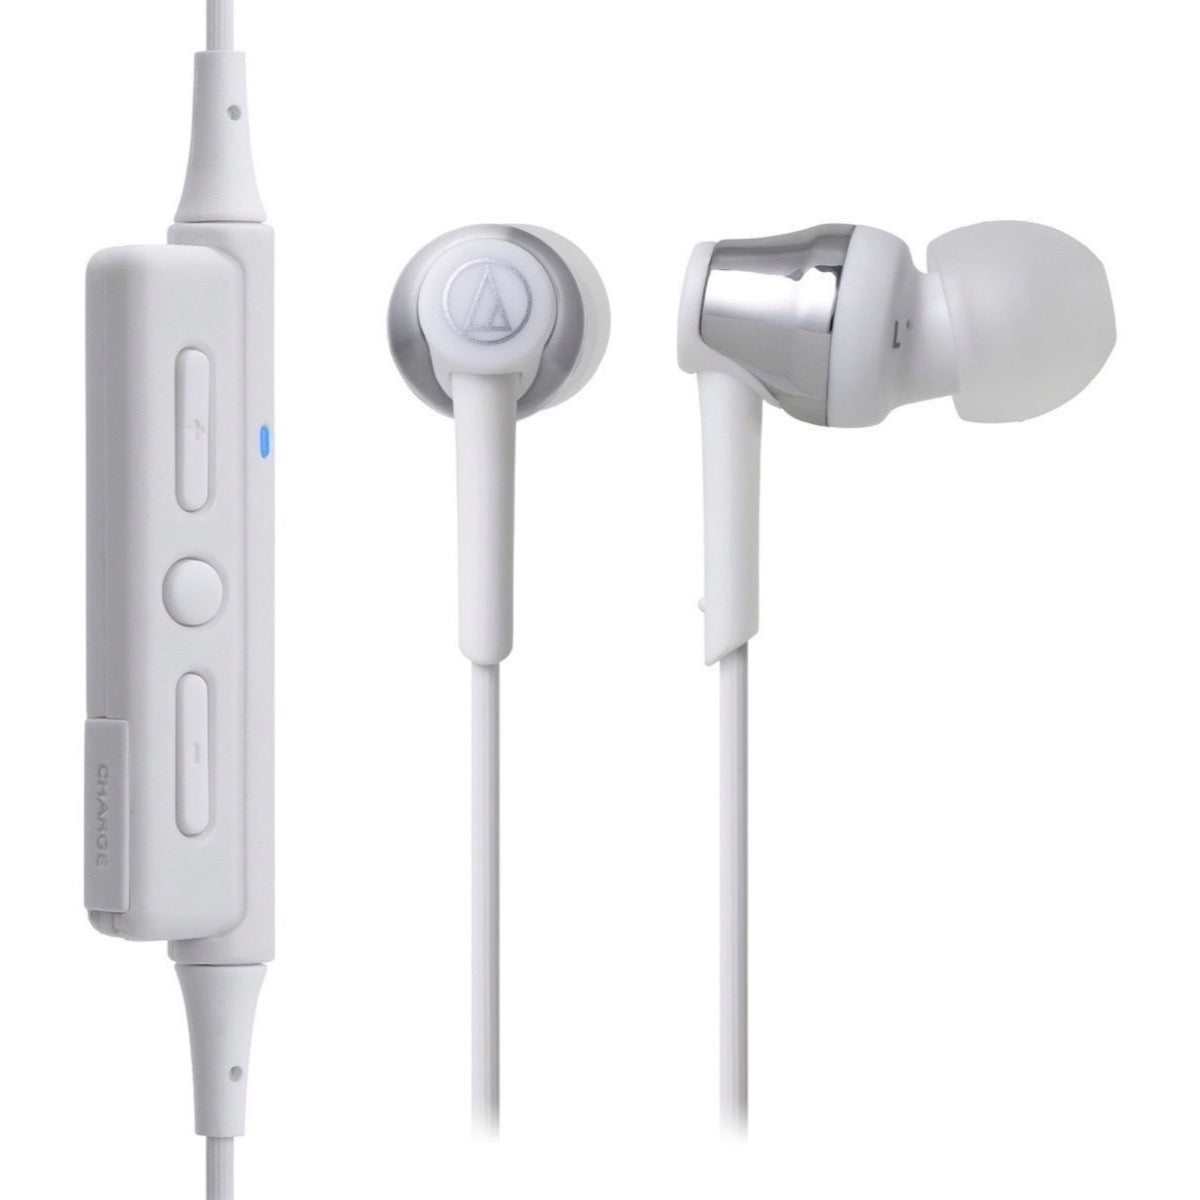 Audio-Technica ATH-CKR35BT Wireless In-Ear Headphones, Silver